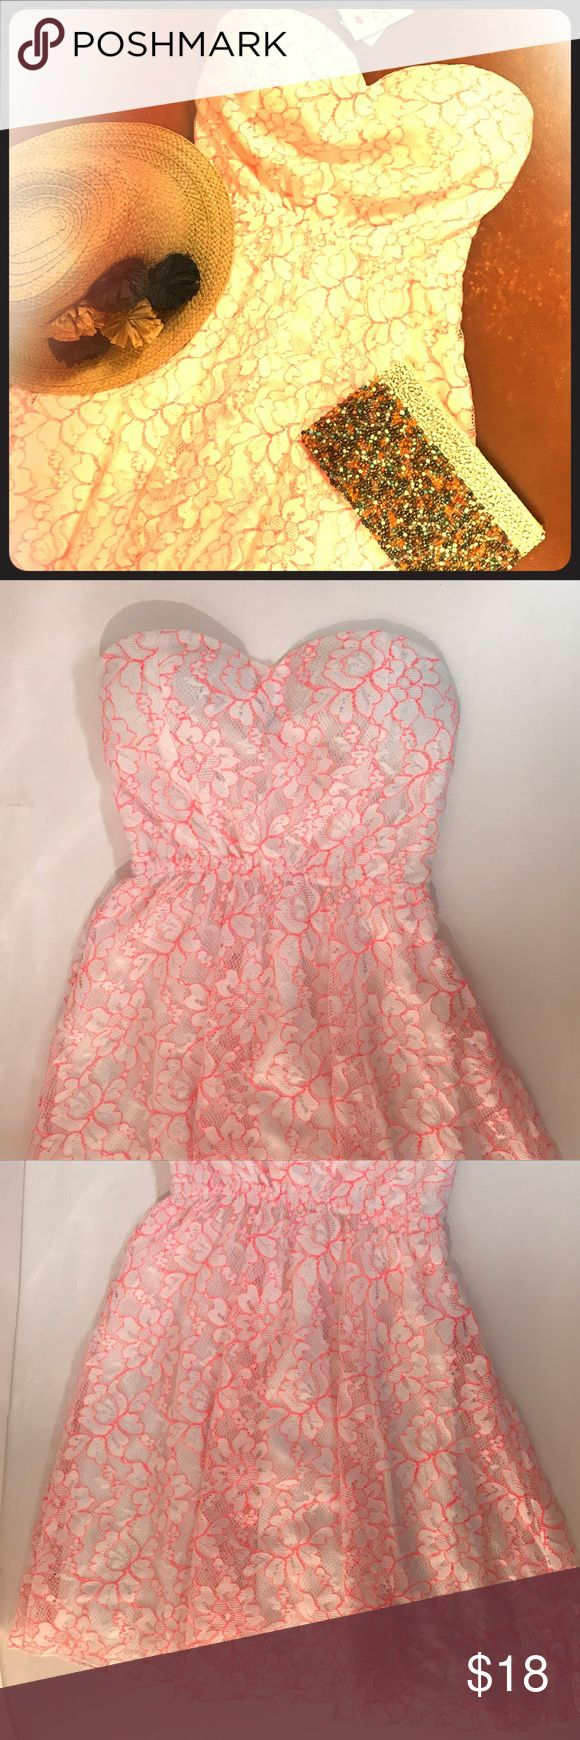 ⚙️NWT!! Coral & White Lace Dress Perfect condition!!  Coral and white lace overlaid dress, lined with white Polyester lining. Feel free to zoom into the pictures for a better look! Rue 21 Dresses Midi